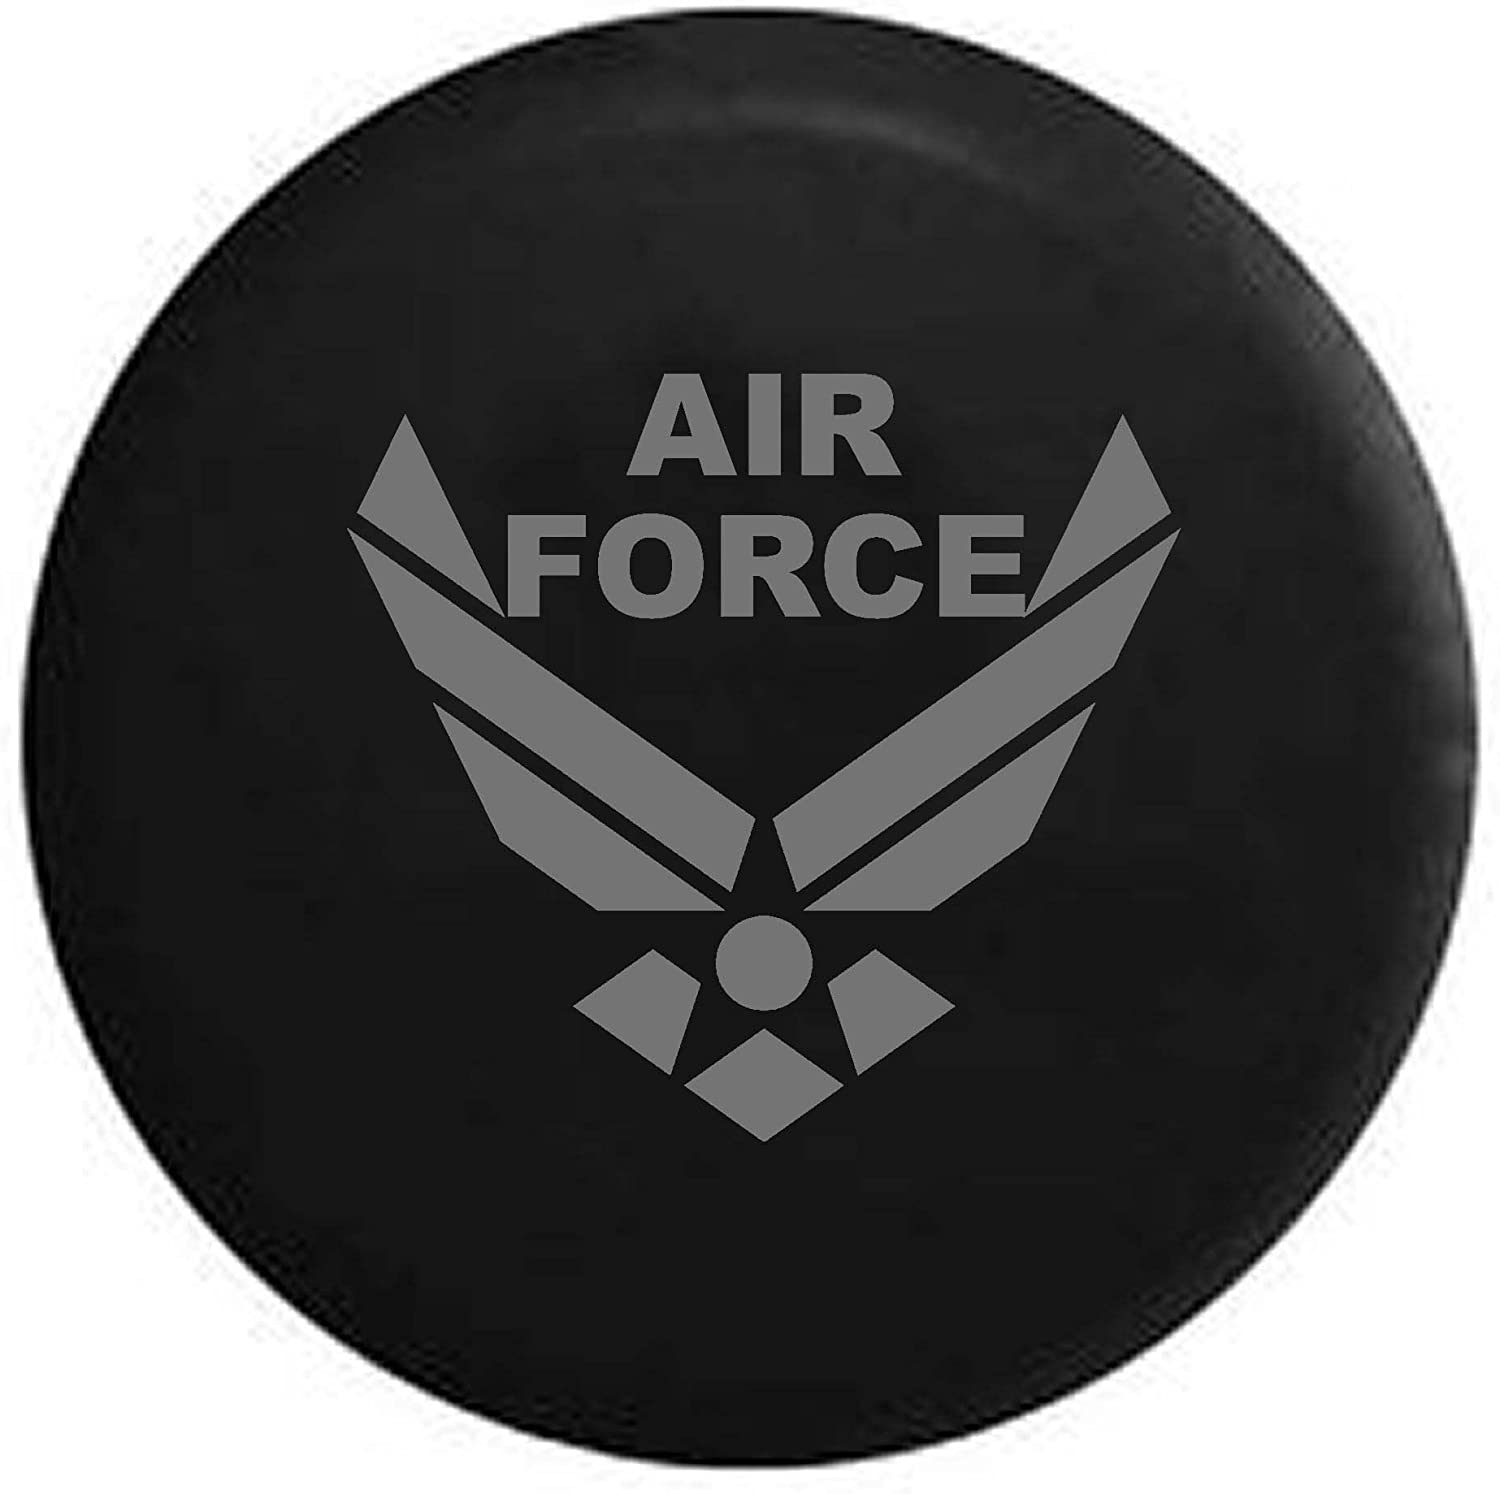 Pike Camo USAF Air Force Military Trailer RV Spare Tire Cover OEM Vinyl Black 27.5 in